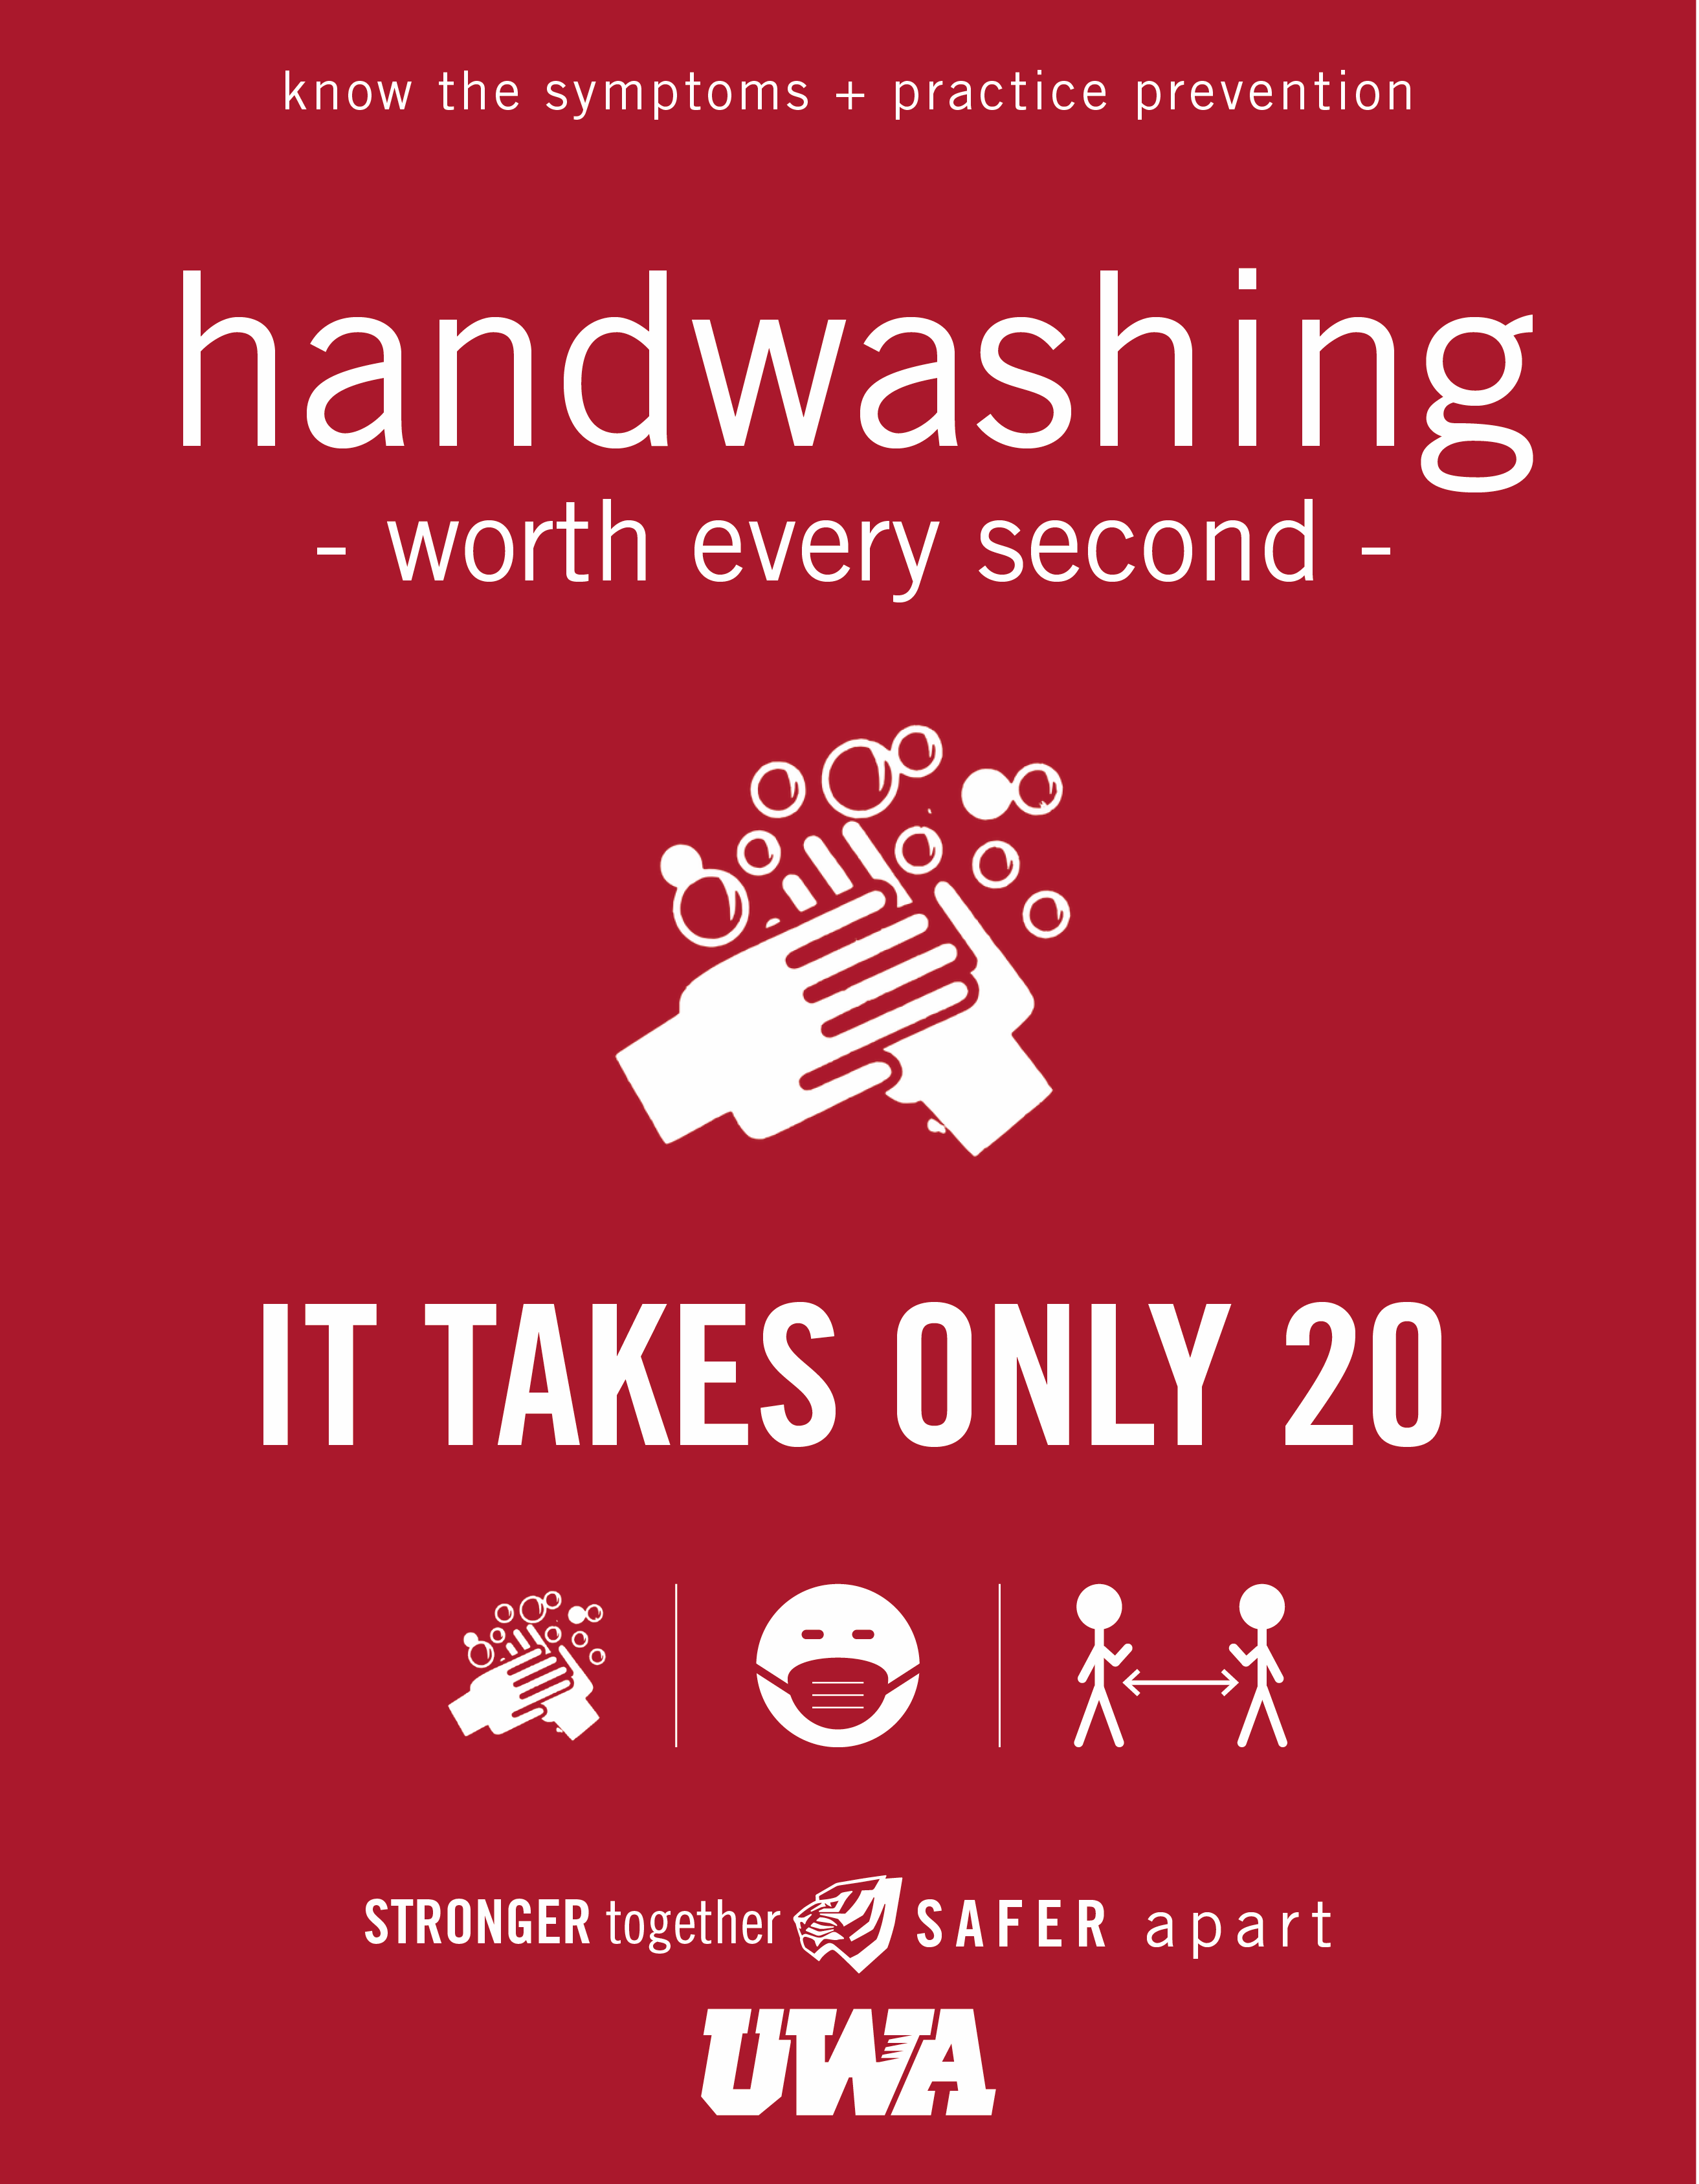 UWA Campus COVID Safety Handwashing